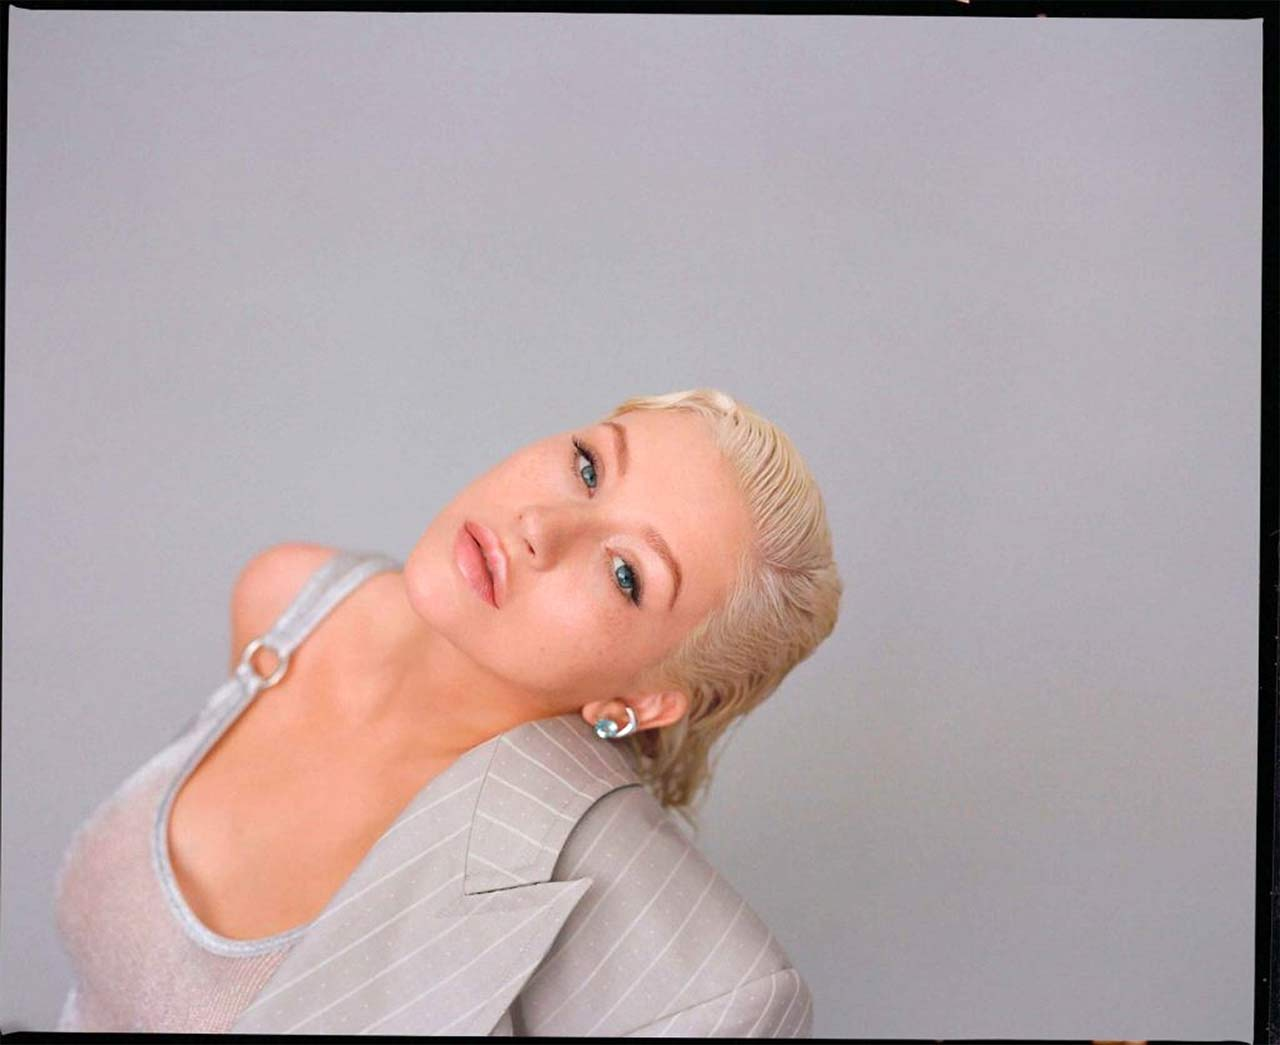 Christina Aguilera Topless Photo Shooting - Scandal Planet